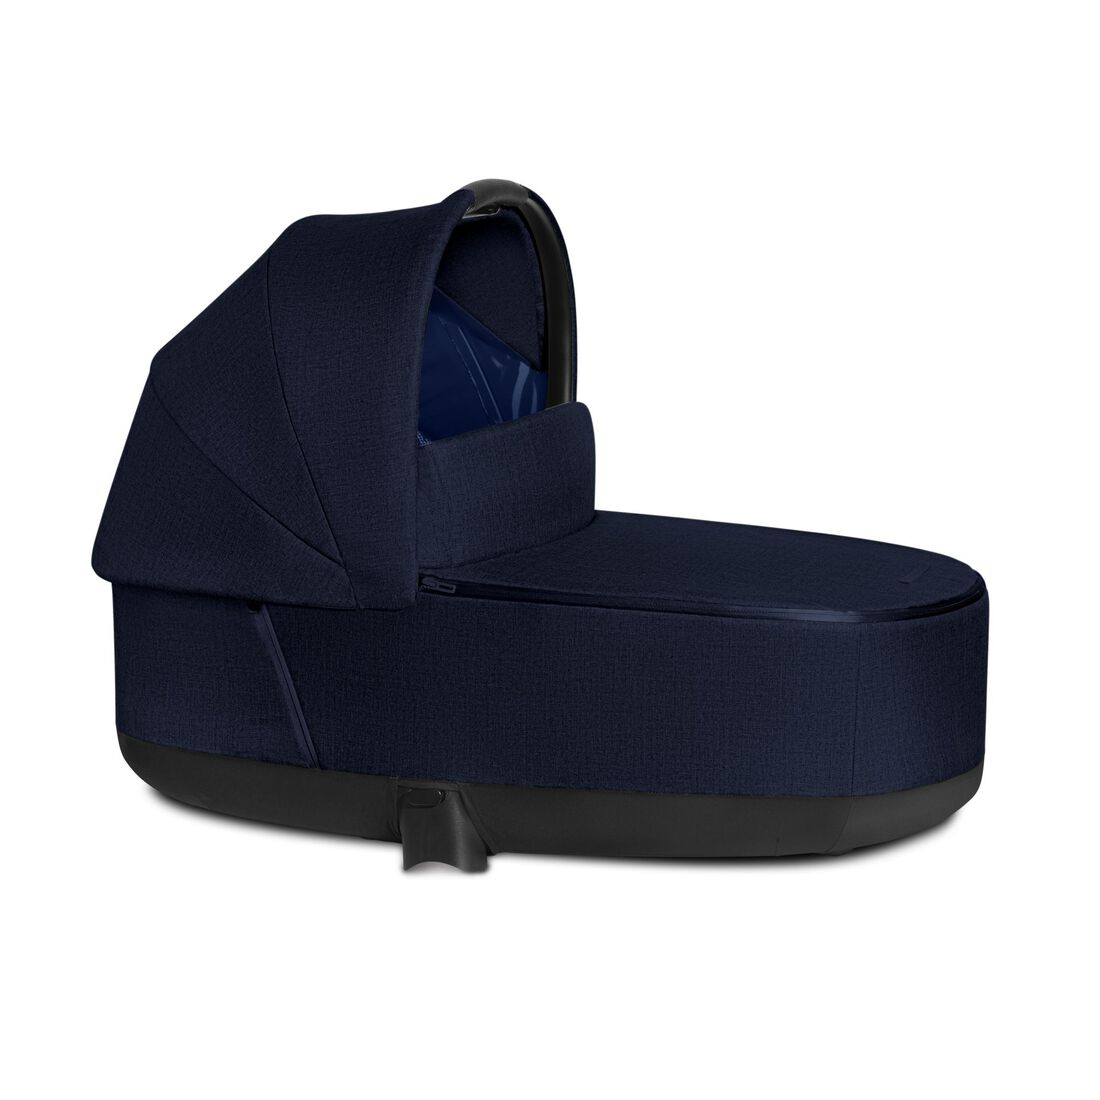 CYBEX Priam Lux Carry Cot - Midnight Blue Plus in Midnight Blue Plus large image number 1